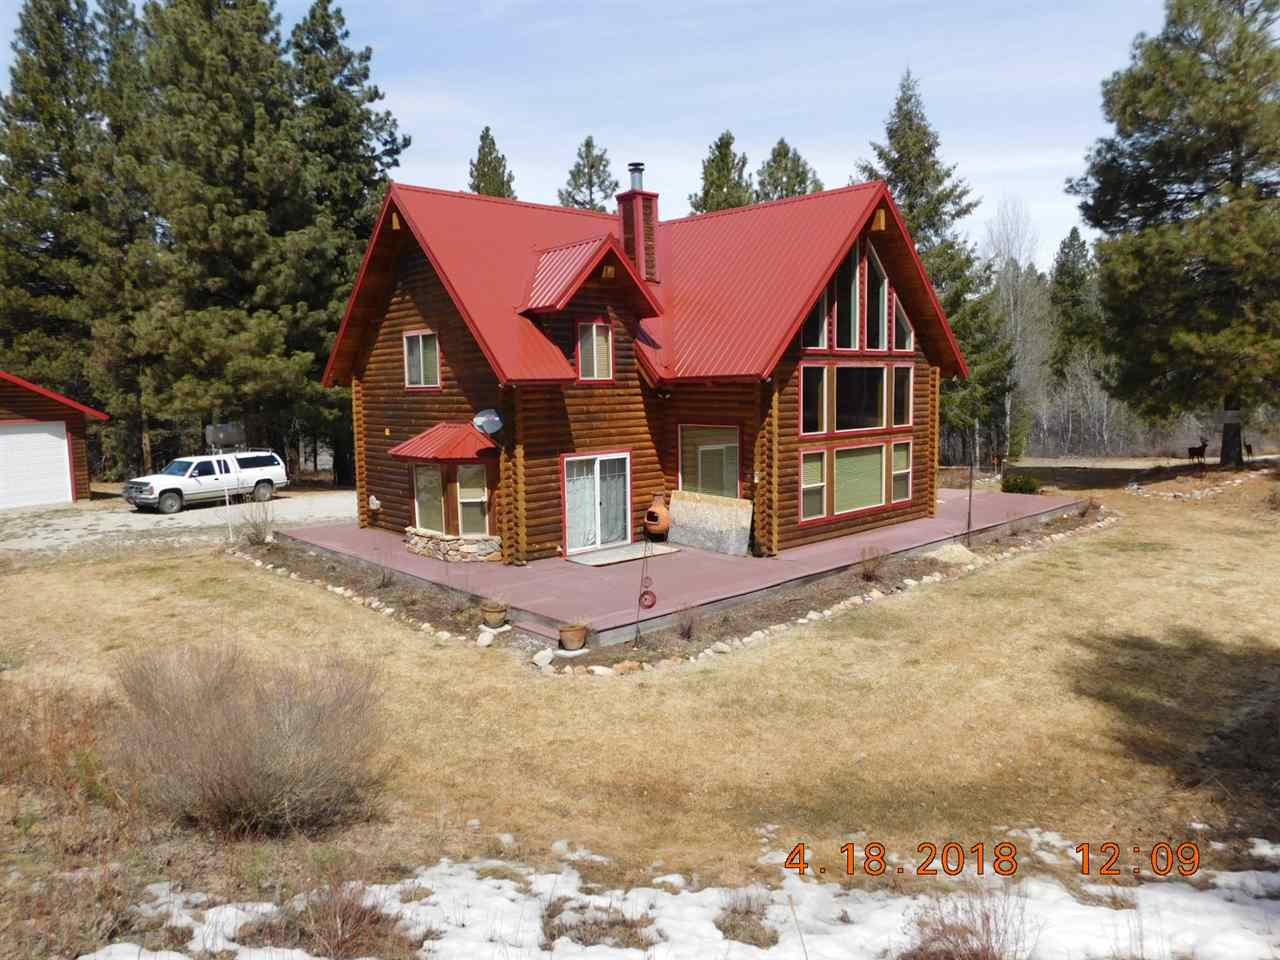 Casa Unifamiliar por un Venta en 1381 E Pine Creek Road 1381 E Pine Creek Road Featherville, Idaho 83647